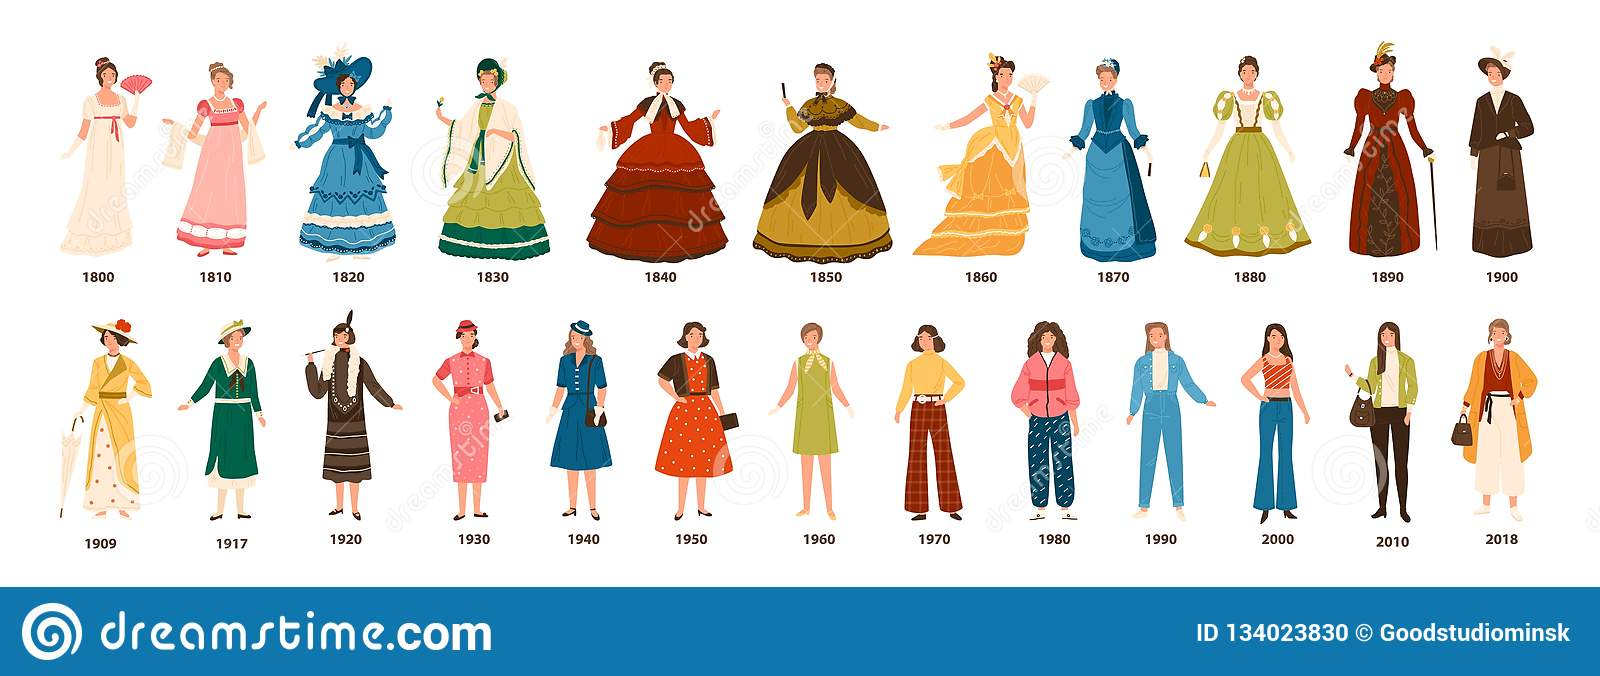 7f9a616231df History of fashion. Collection of female clothing by decades. Bundle of  pretty women dressed